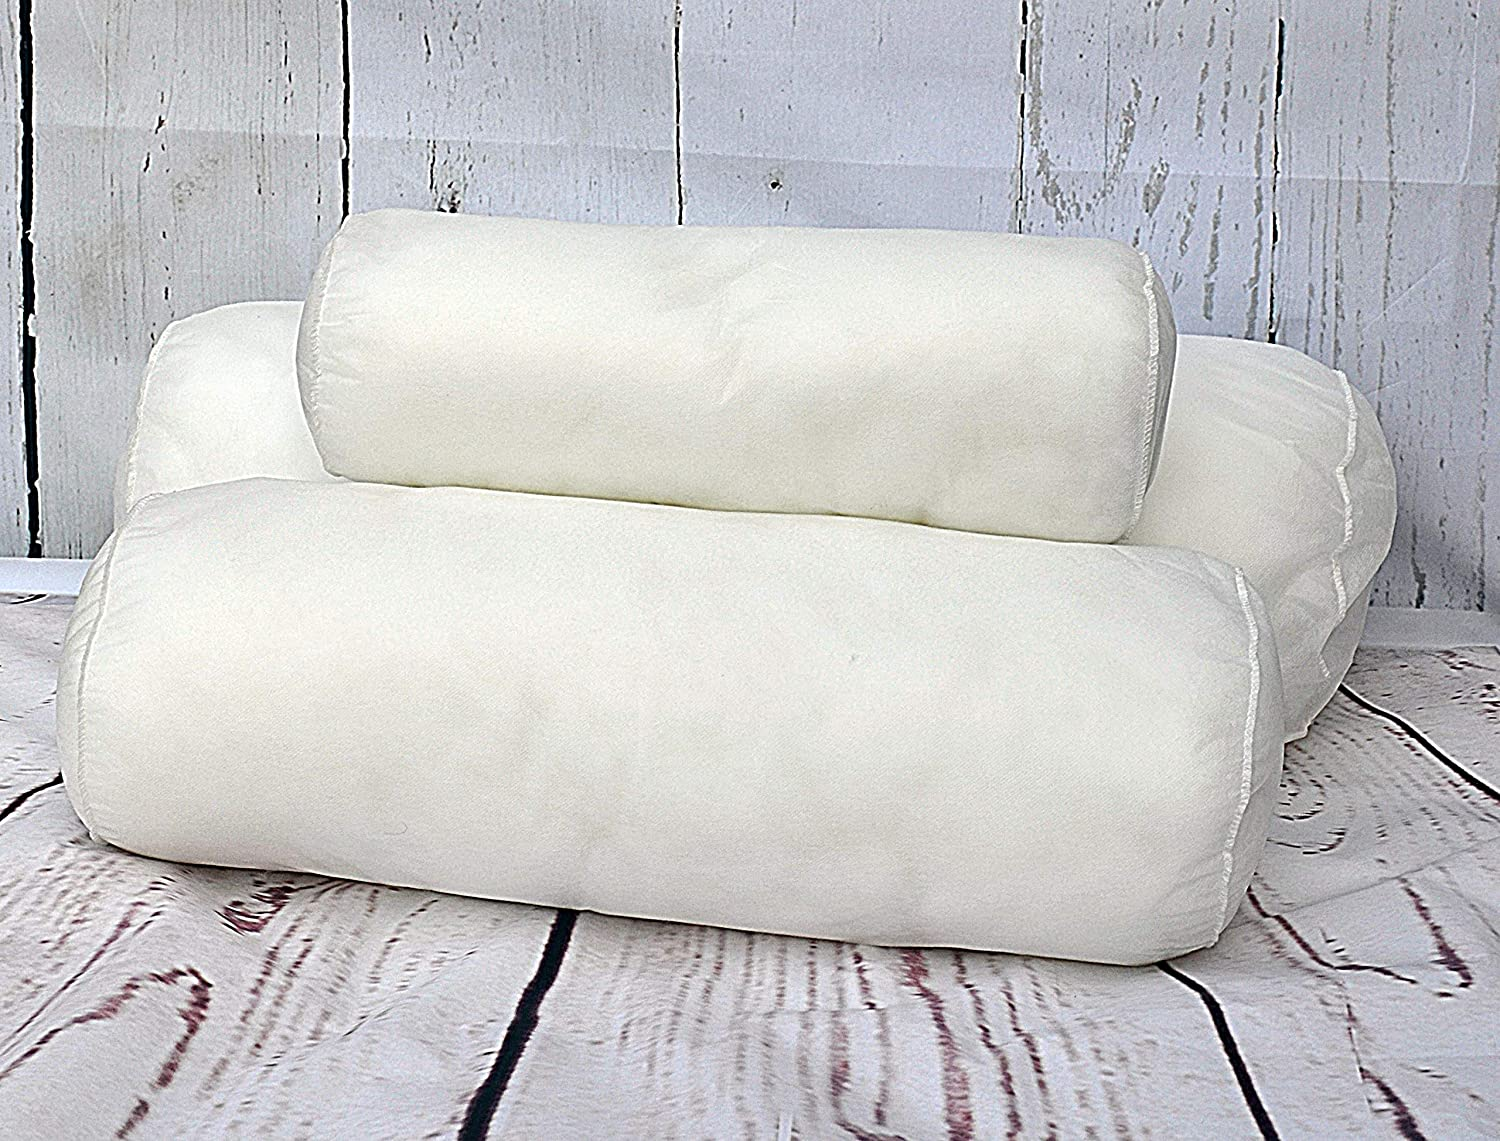 Multi-purpose Super Comfy Cuddly -Non-Allergenic Orthopedic Long Pillow for Back Maternity Support- Pregnancy Support Pillow Premium Hollowfiber Filled Bolster Round Pillow 15x45cm Neck